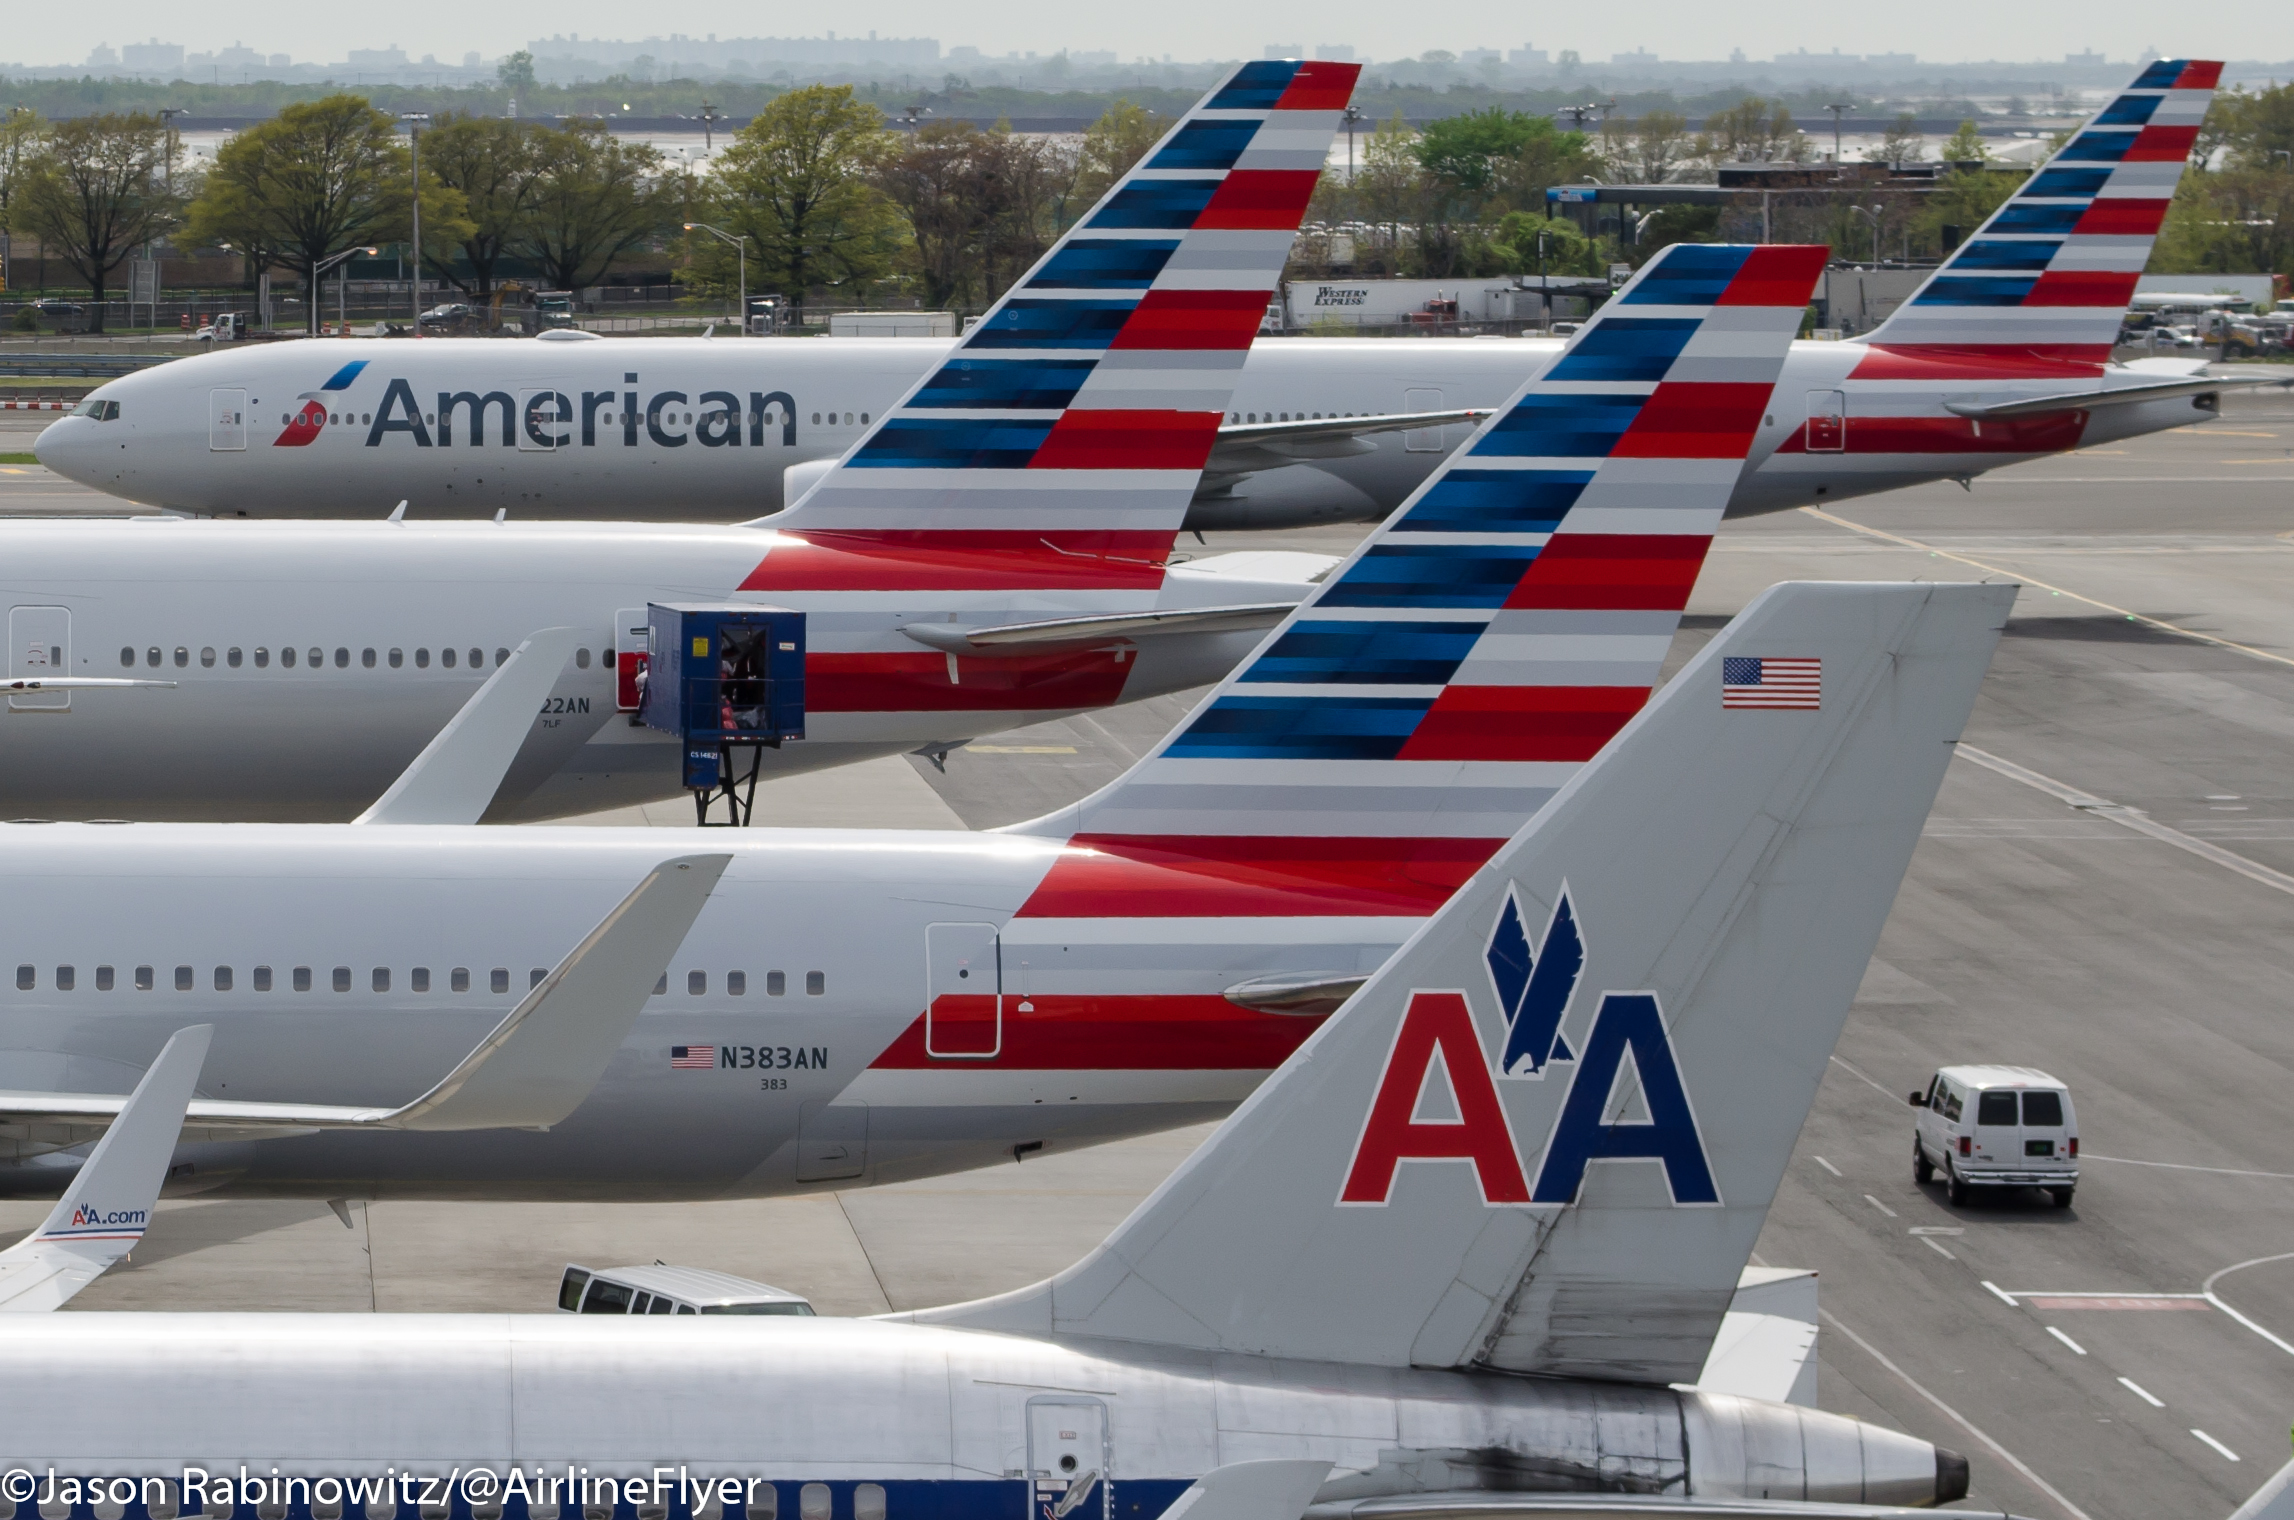 american airlines acquisition Many airlines are charging additional fees for checked baggage  american,  $25, $35, select american airlines for detailed baggage allowance information.